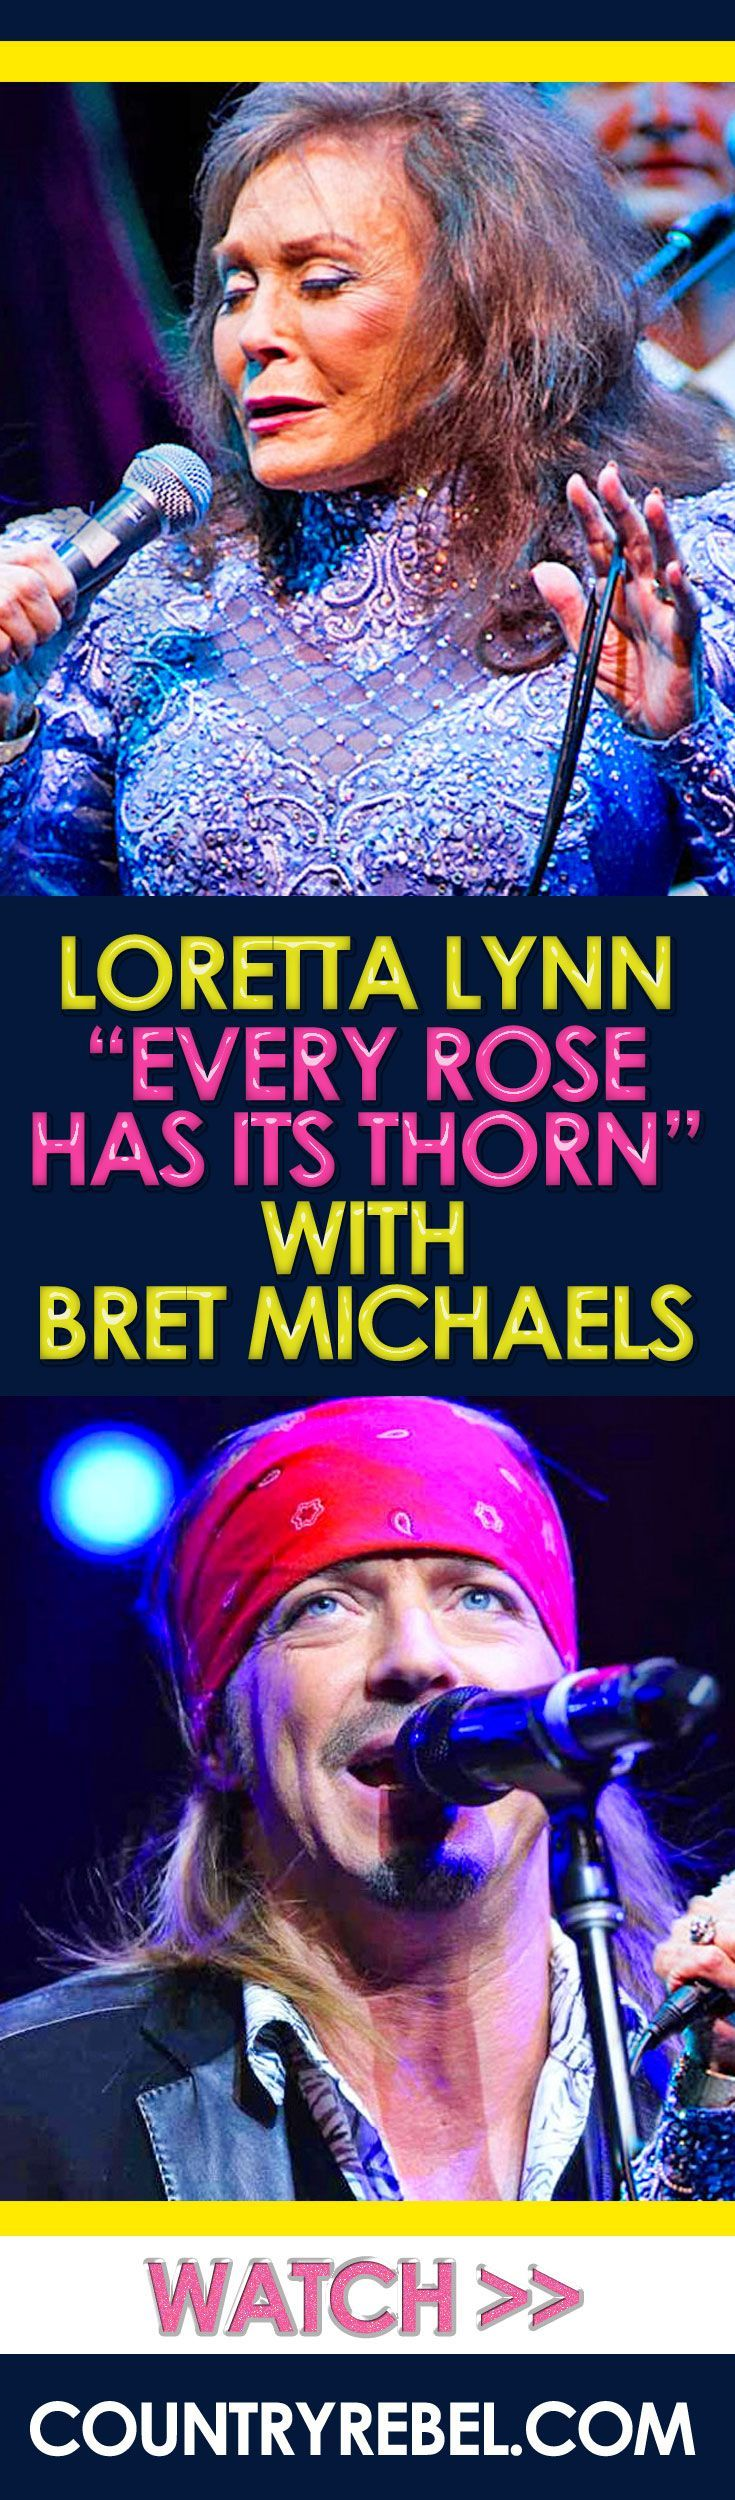 Country Music - Loretta Lynn Rocks 'Every Rose Has Its Thorn' With Poison's Bret Michaels